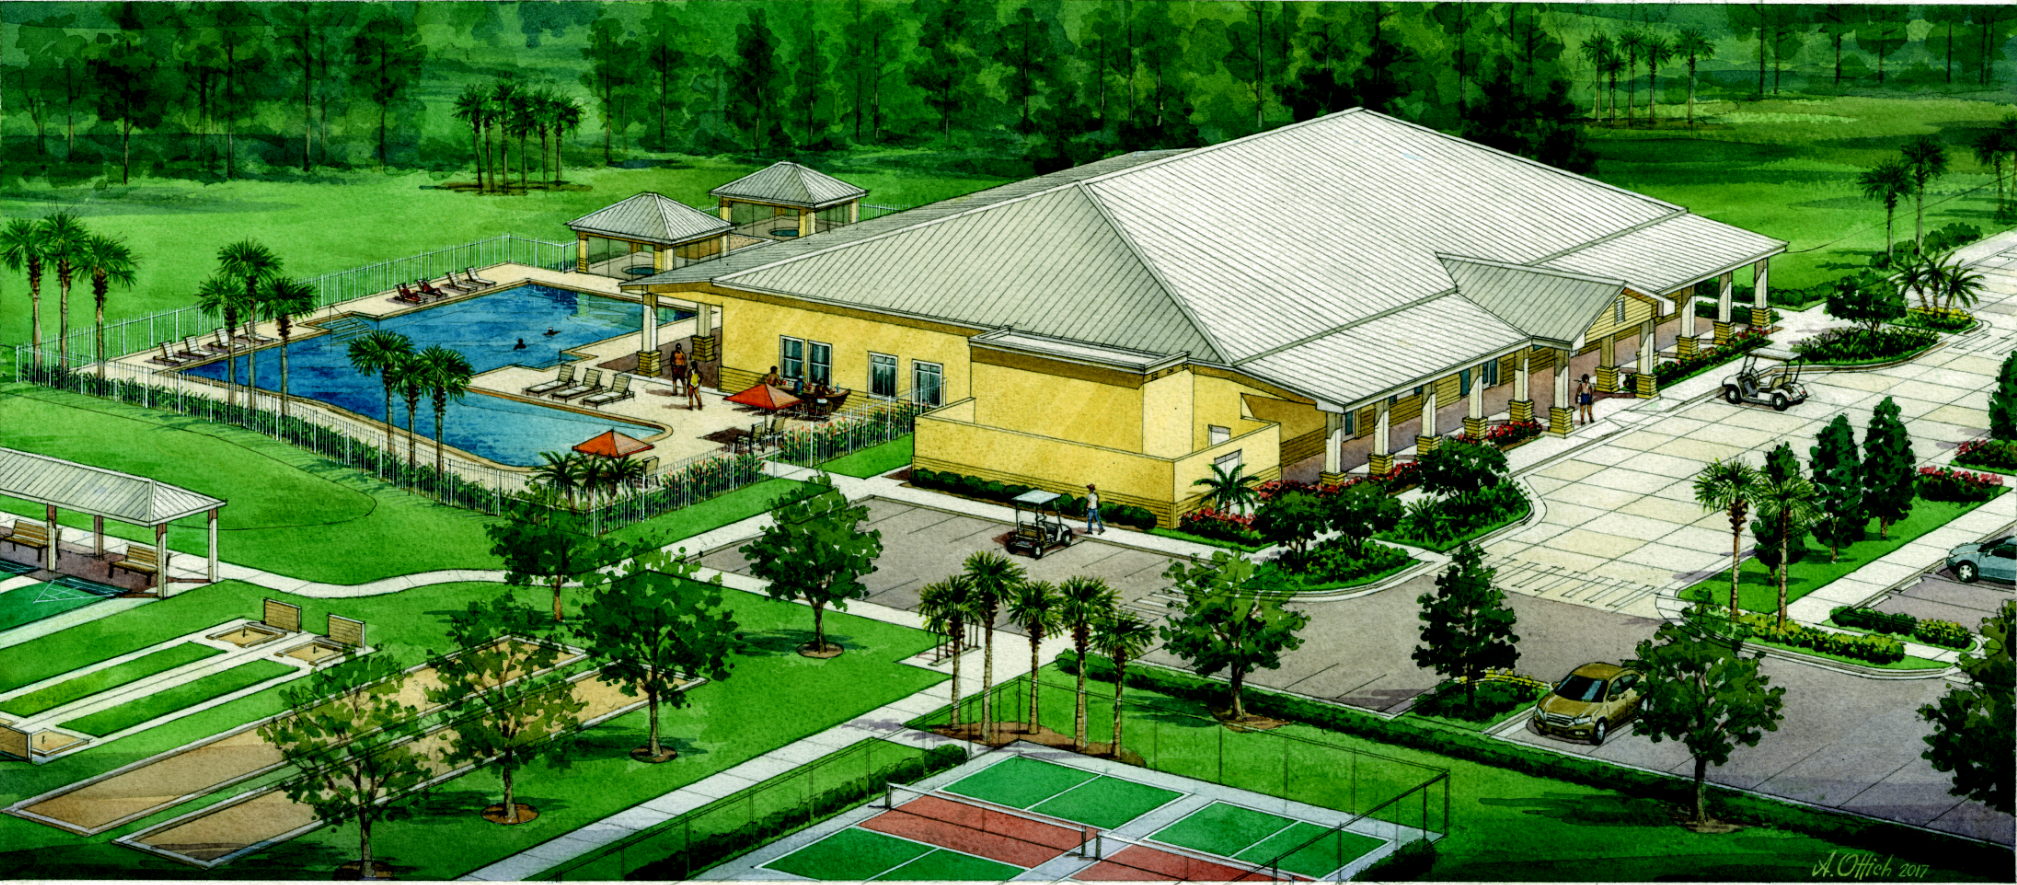 New Manufactured Home Community Slated for Florida